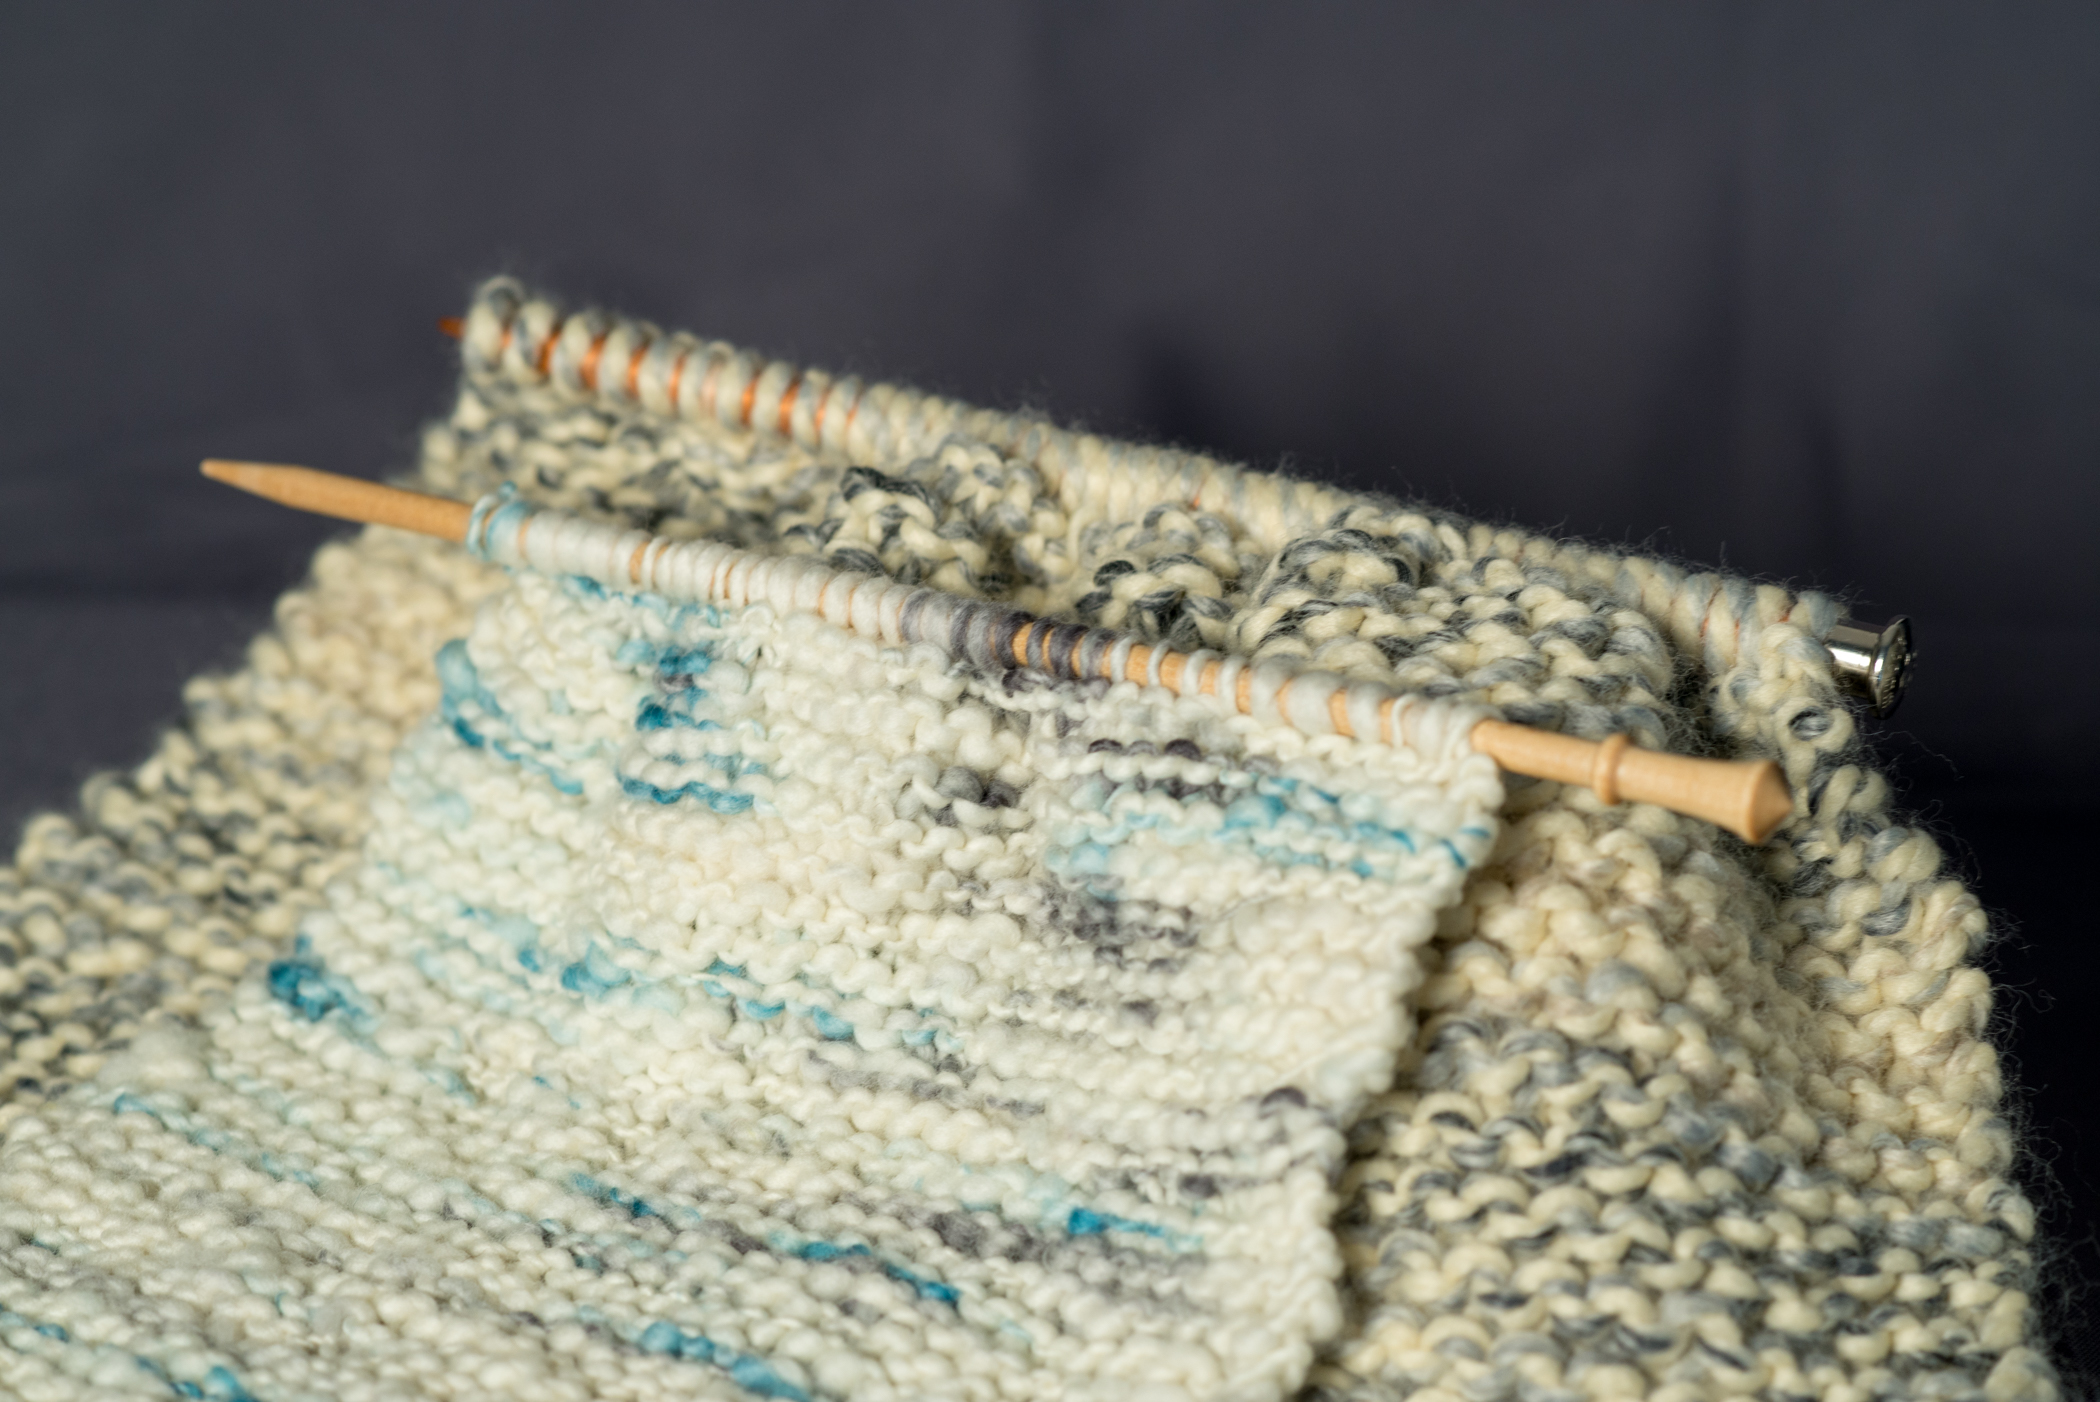 Knitting Needles And Yarn For Beginners : Knitting needles yarn and resources hands on art lab